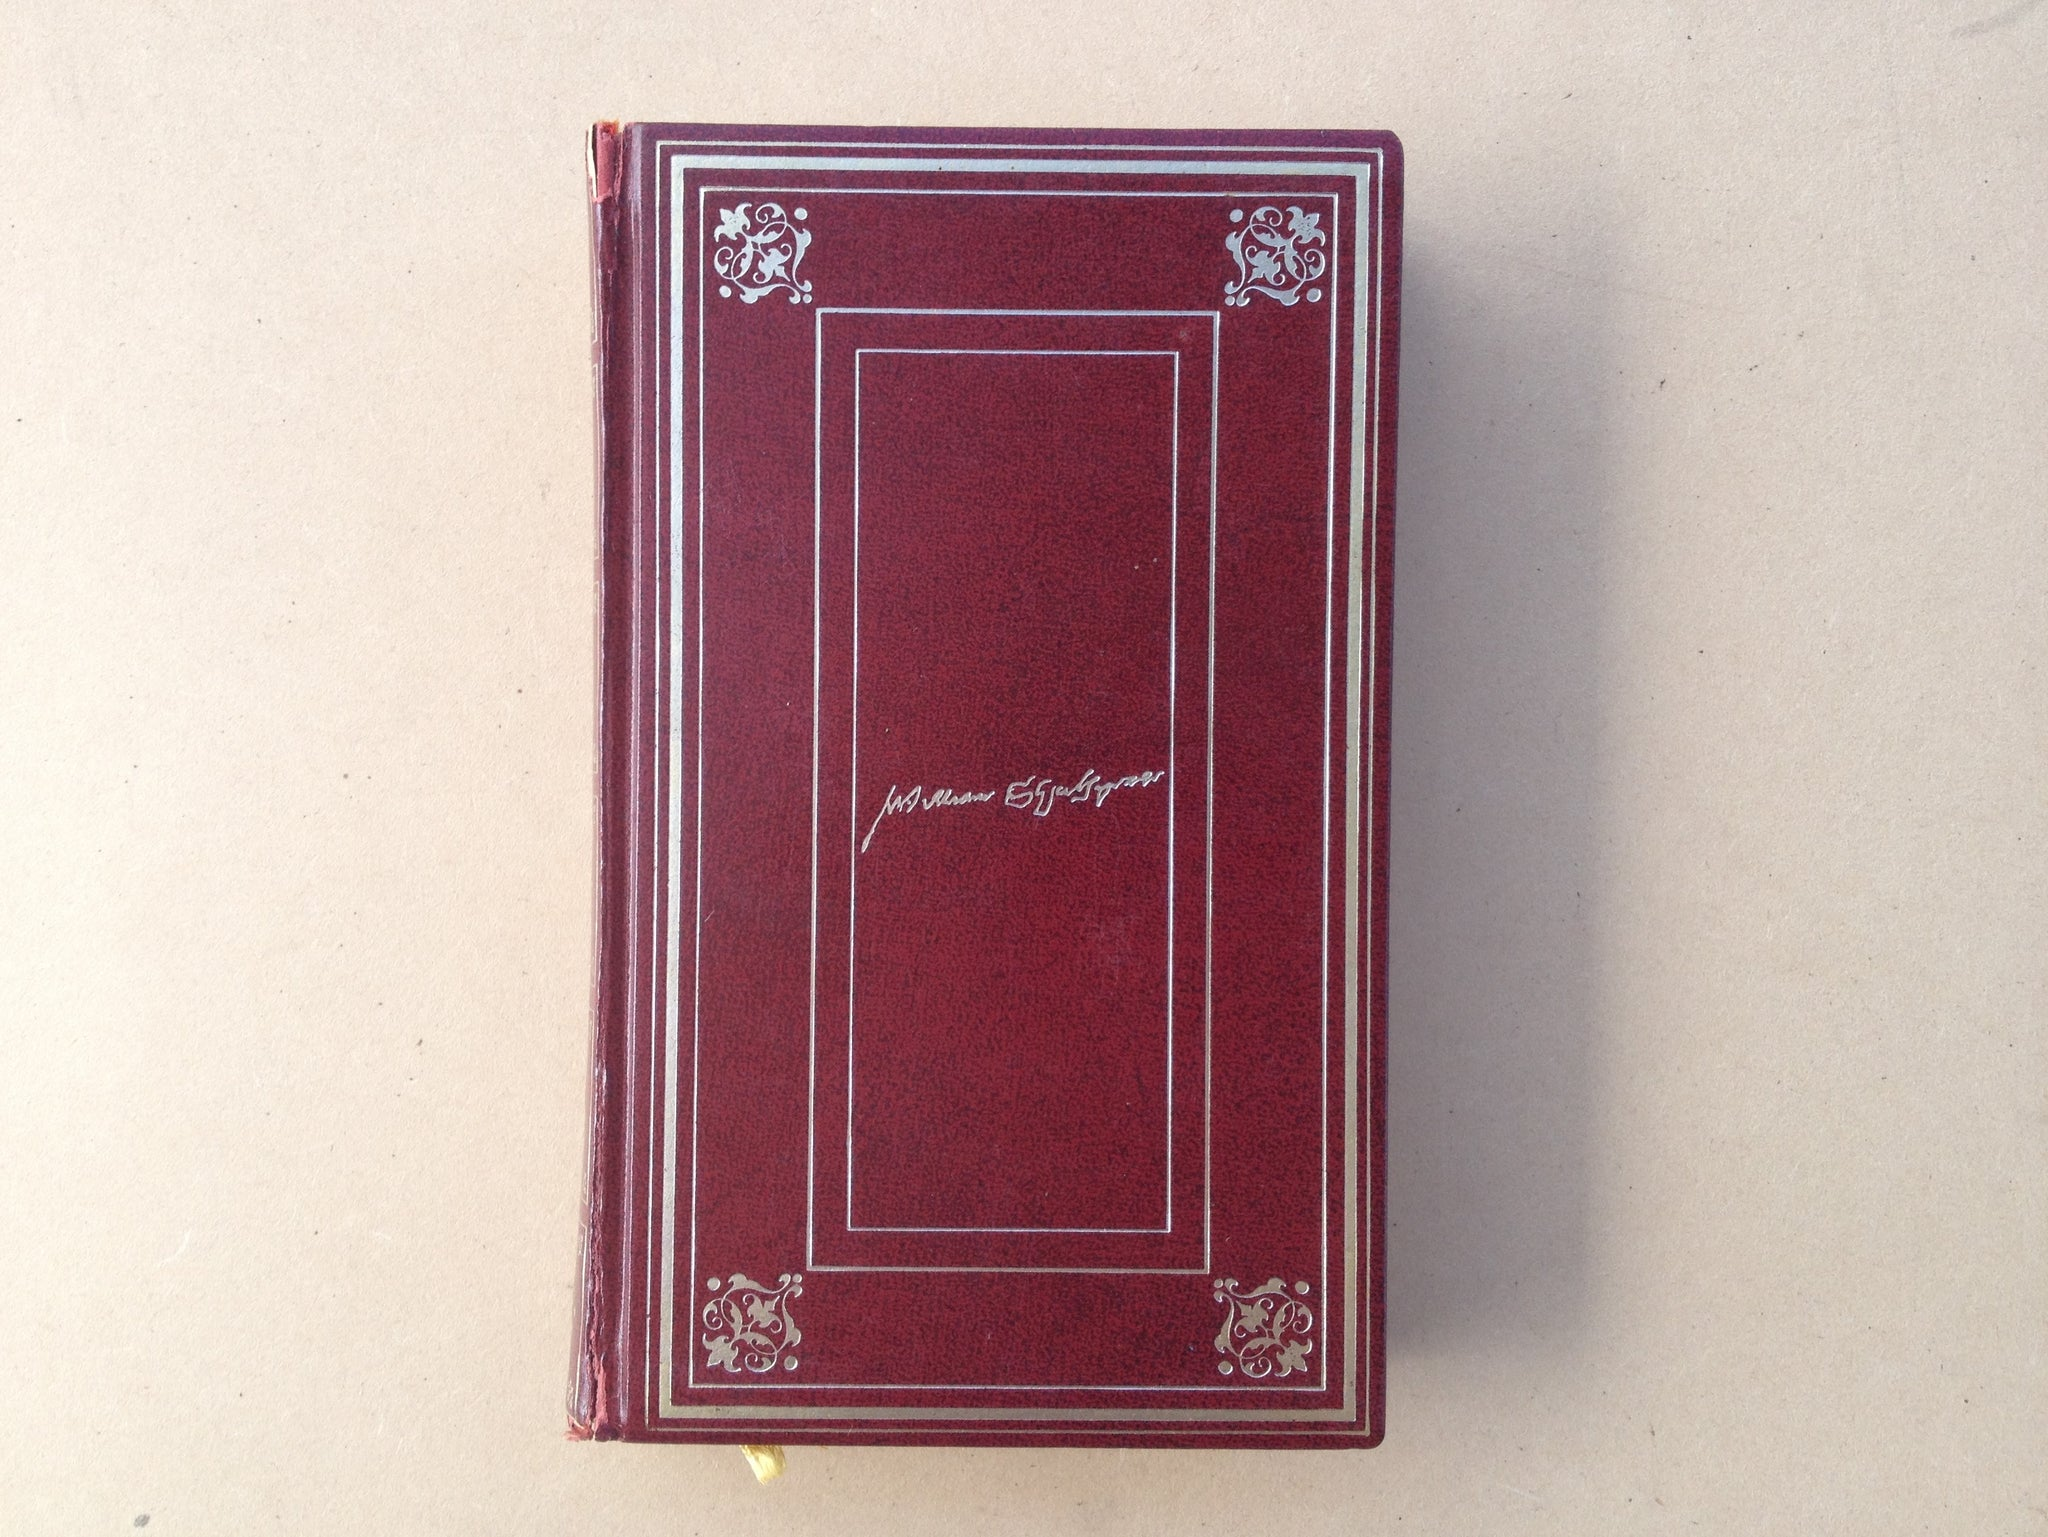 Shakespeare The Complete Works Volume III The Tragedies by Heron Books London